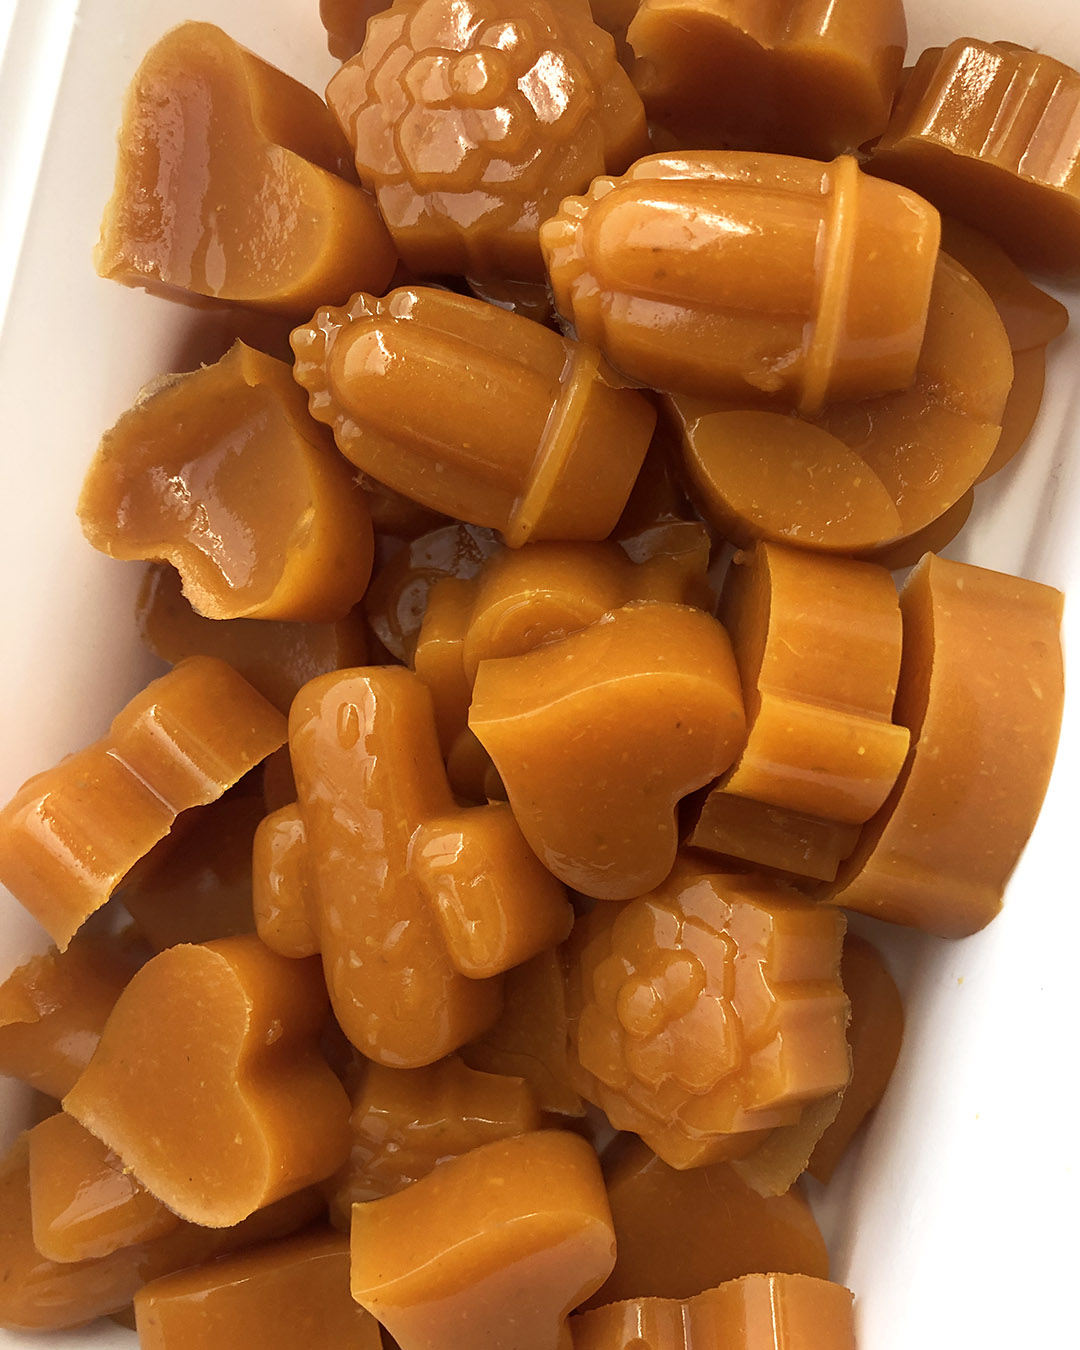 Gelatin Is Healthy for Dog Joints